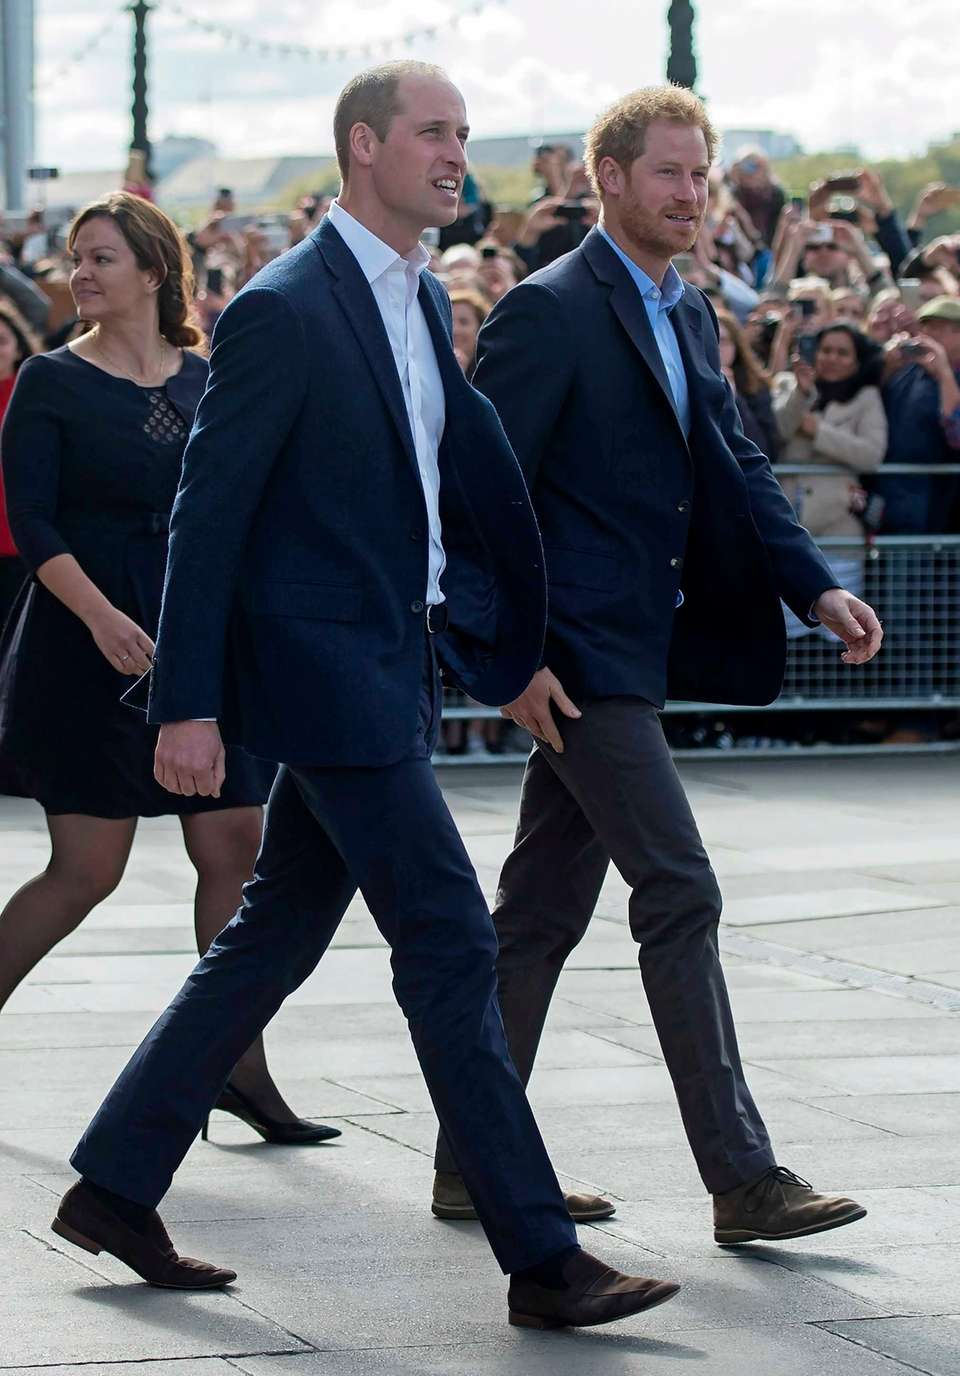 Prince William, the Duke of Cambridge, left, and